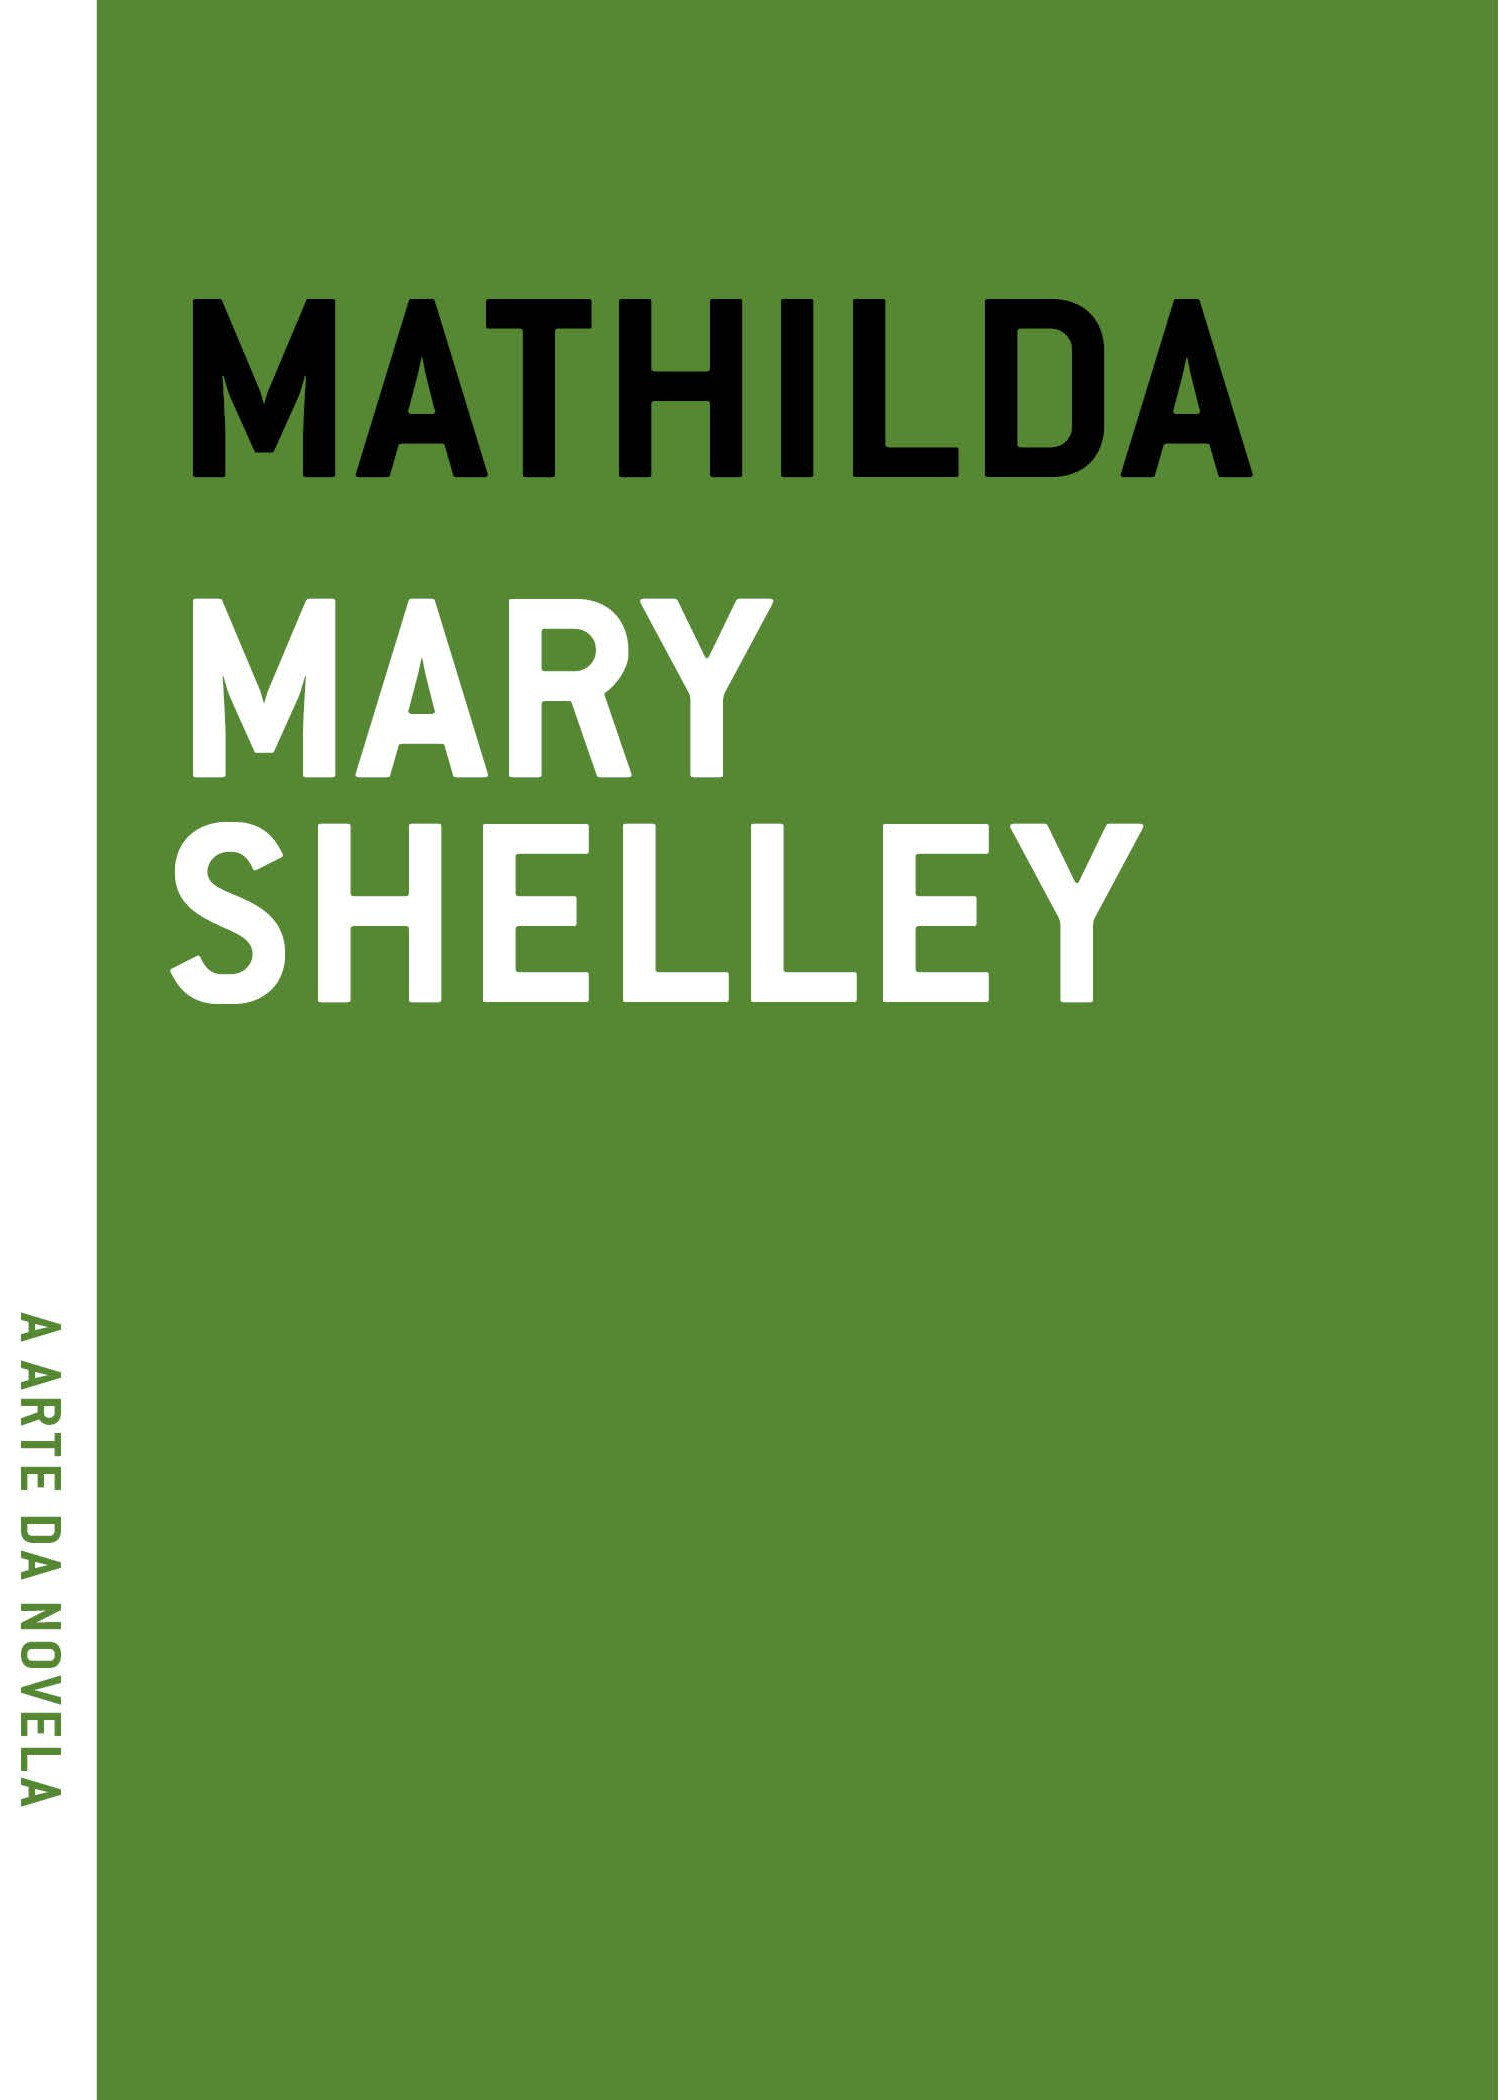 Mathilda, livro de Mary Shelley